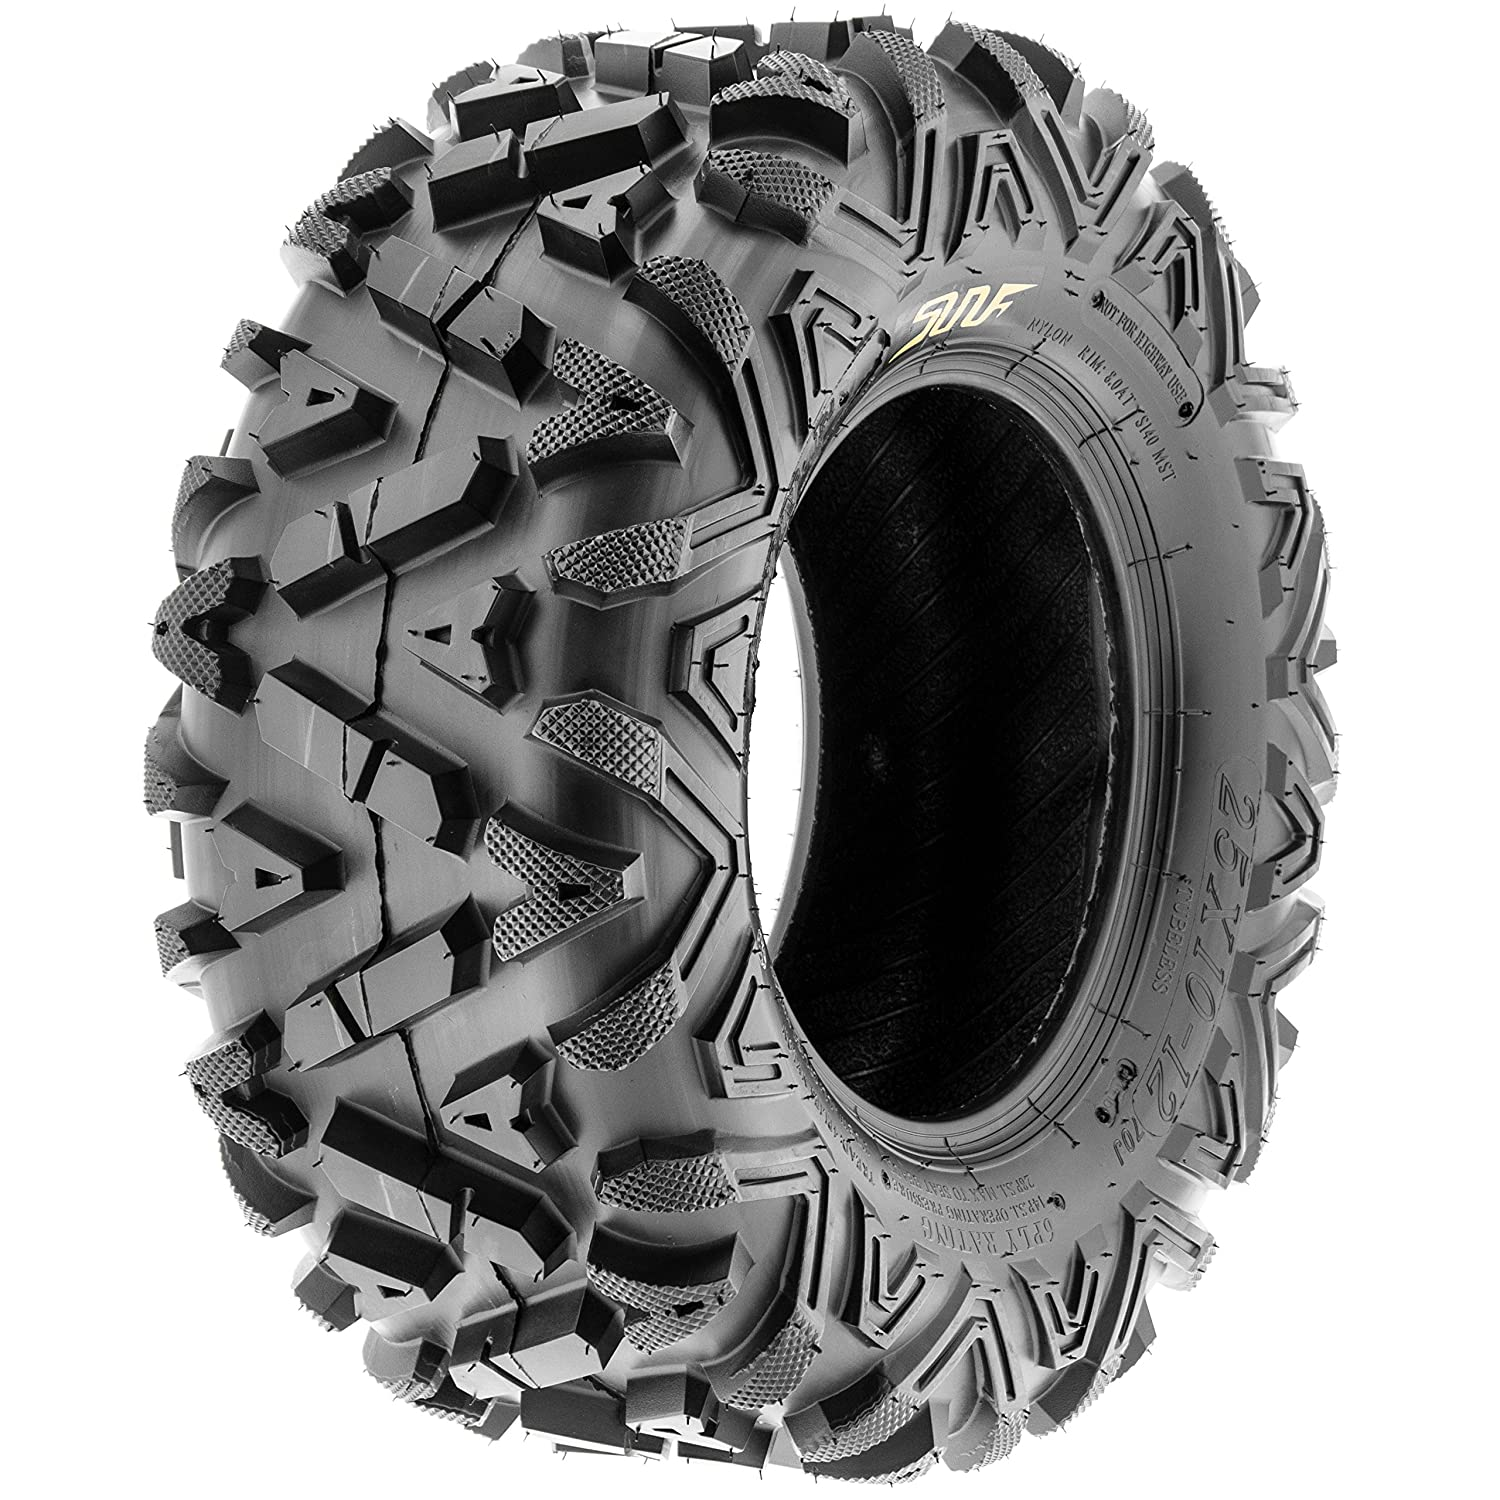 SunF A033 Power.I AT 24x11-10 ATV UTV Tire, All-Terrain Off-Road, 6 PR, Tubeless